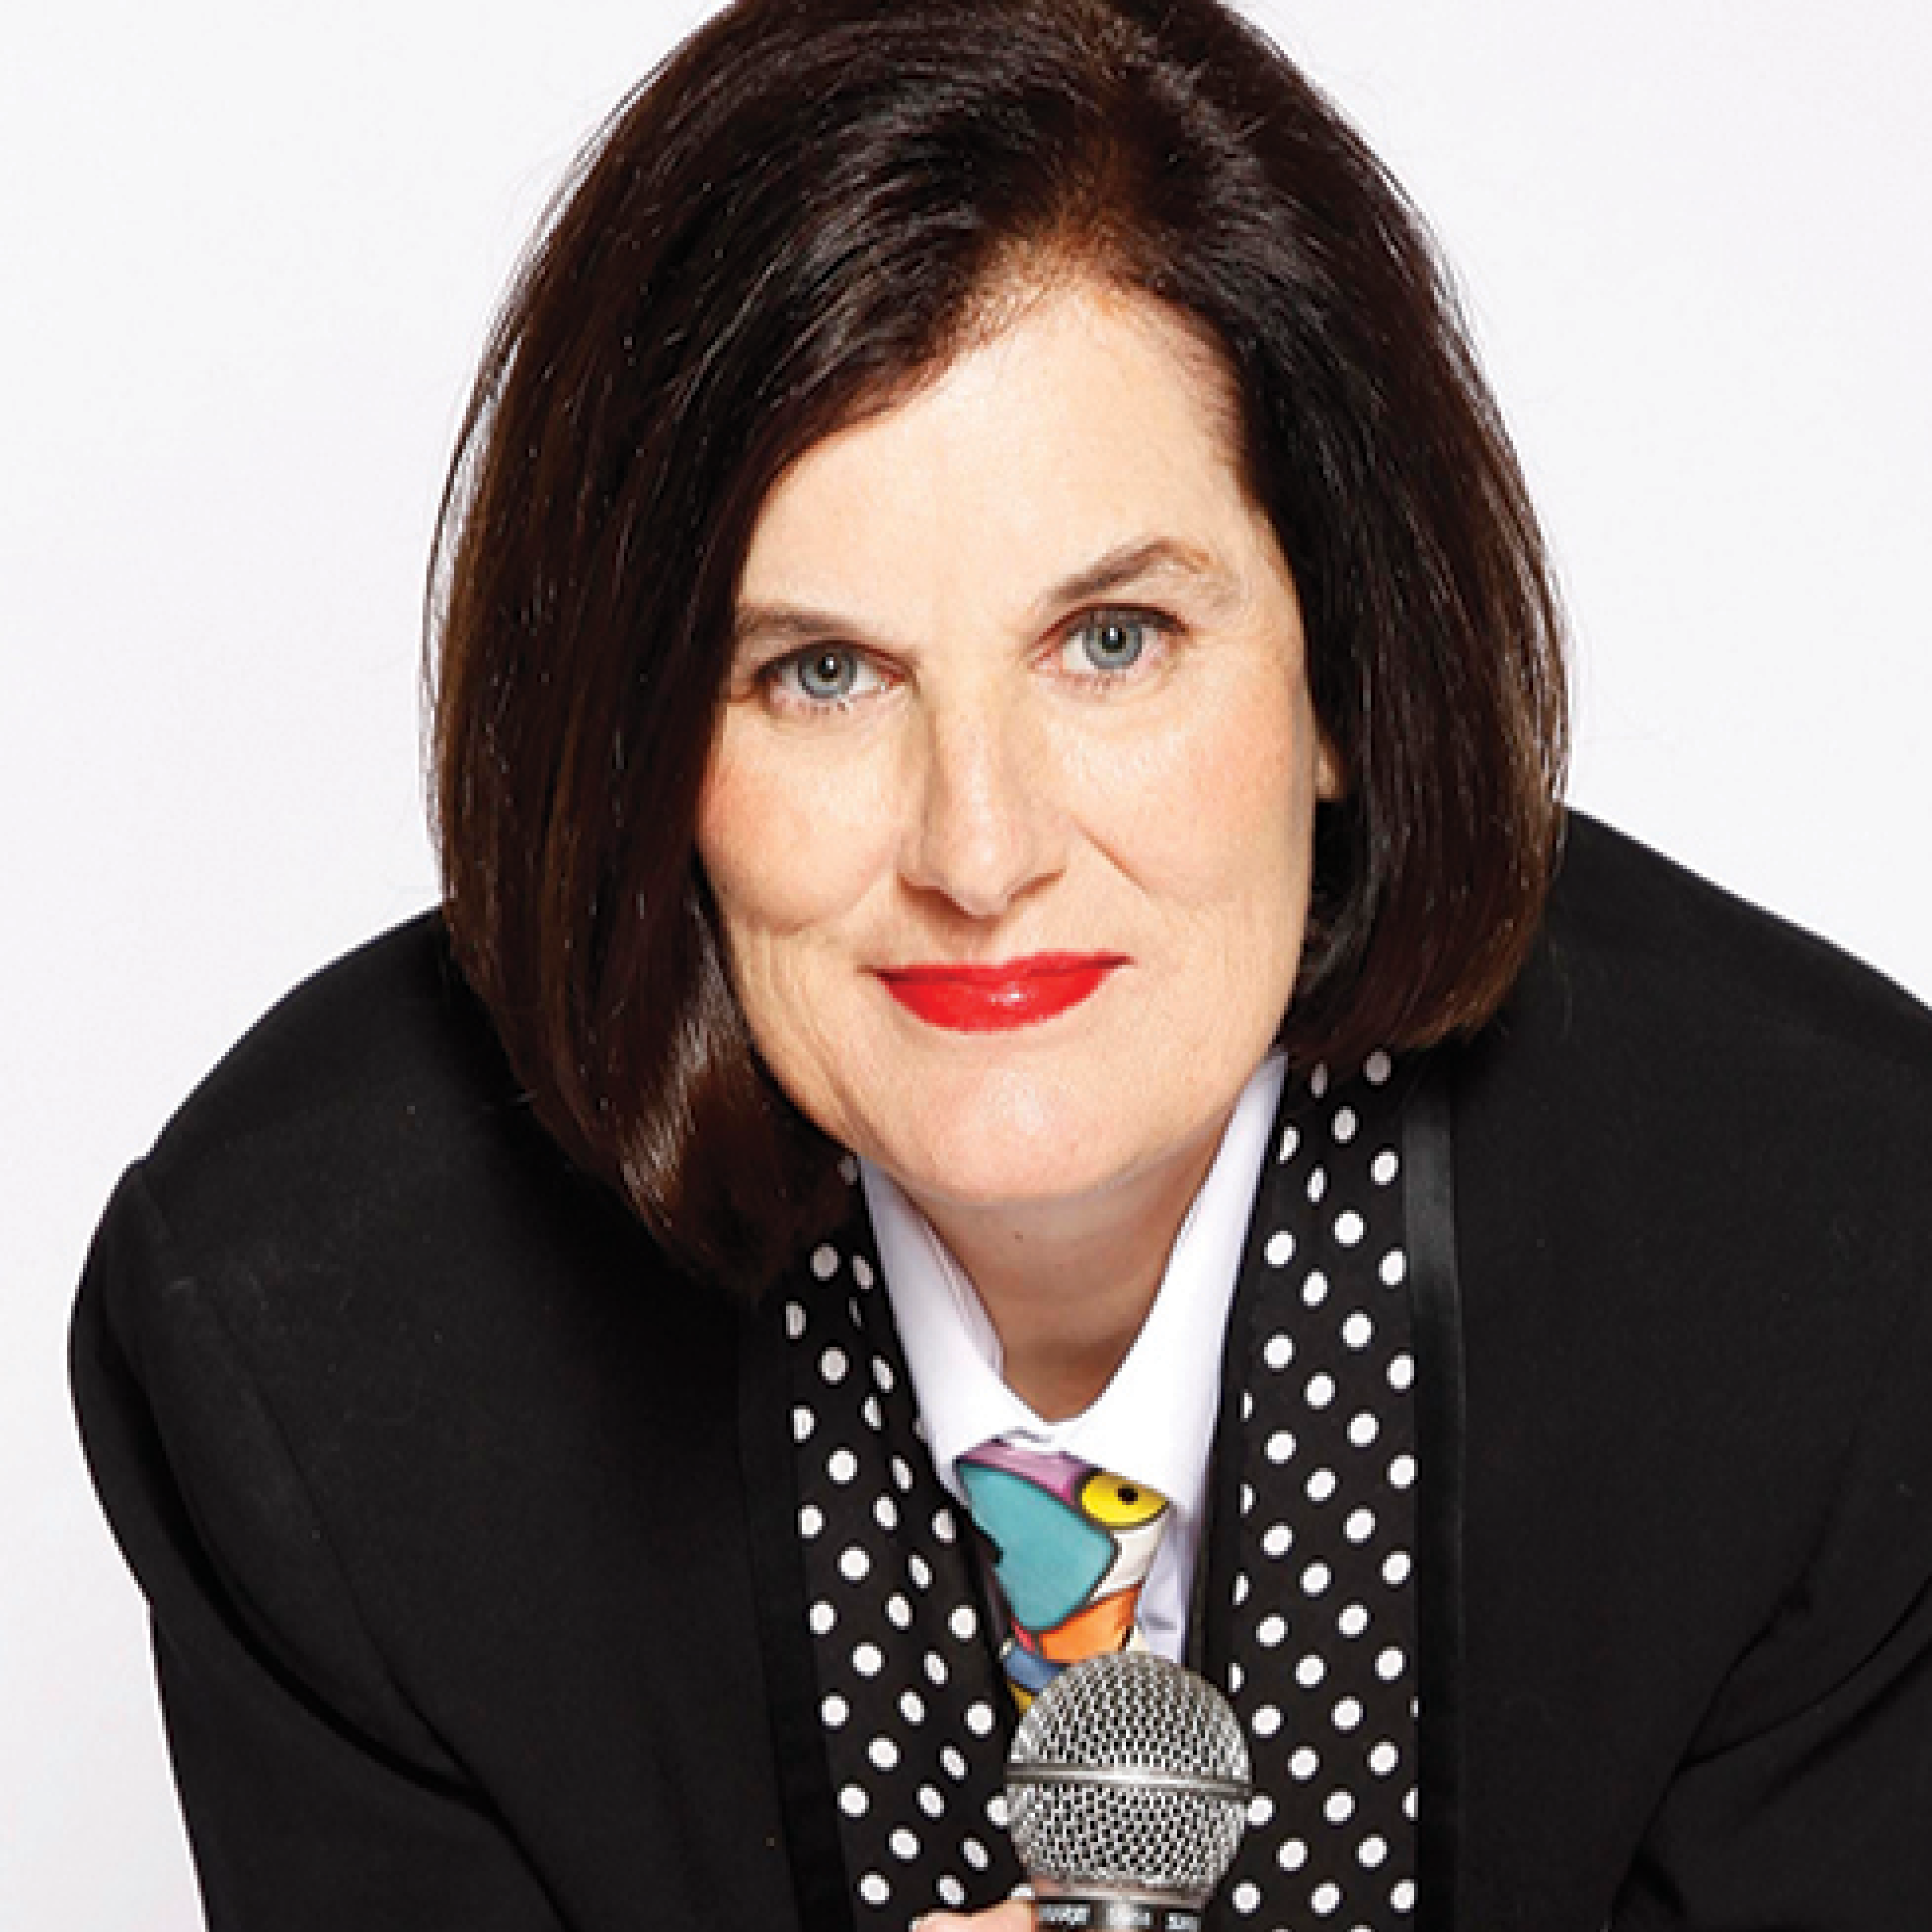 Caption: Paula Poundstone